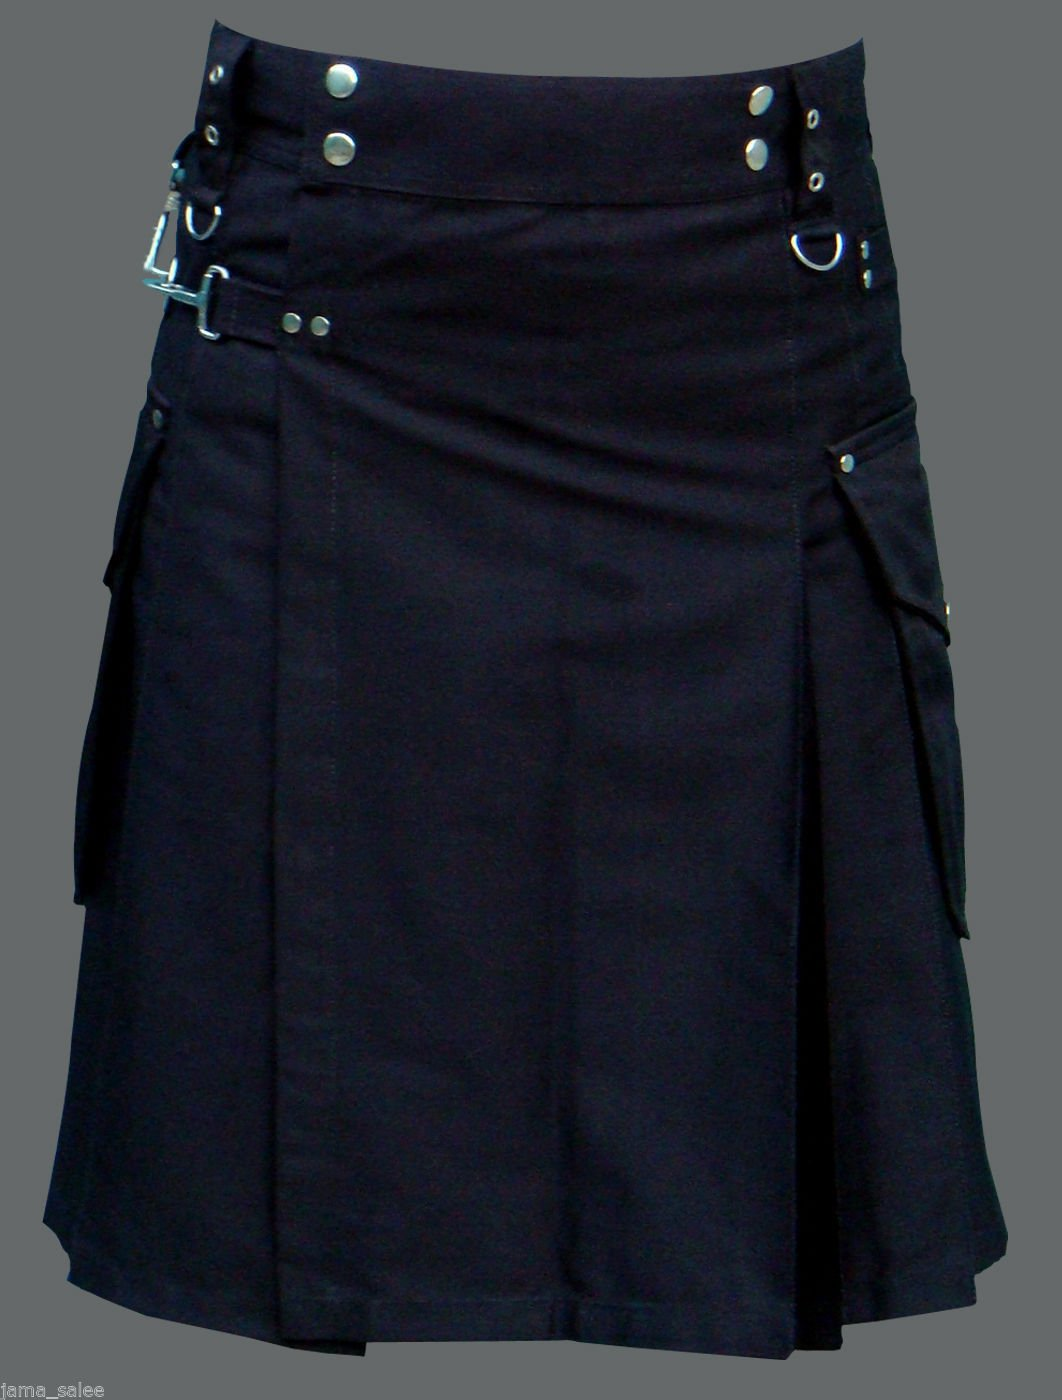 Deluxe Black Cotton Kilt Handmade Utility Gothic Modern Kilt with Cargo Pockets Waist Size 32 to Fit